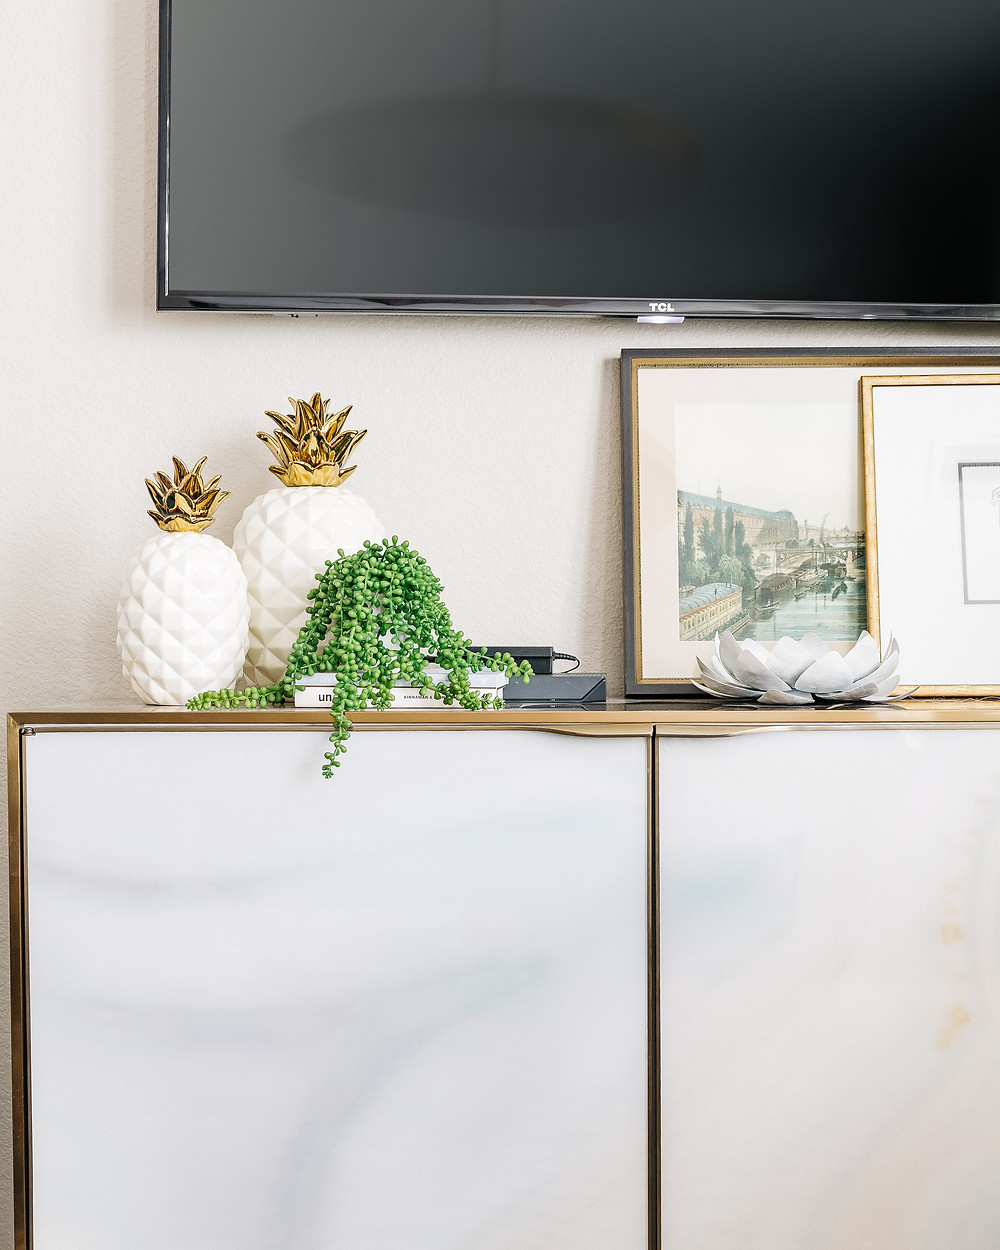 Wall mounted TV with vignette of art and greenery